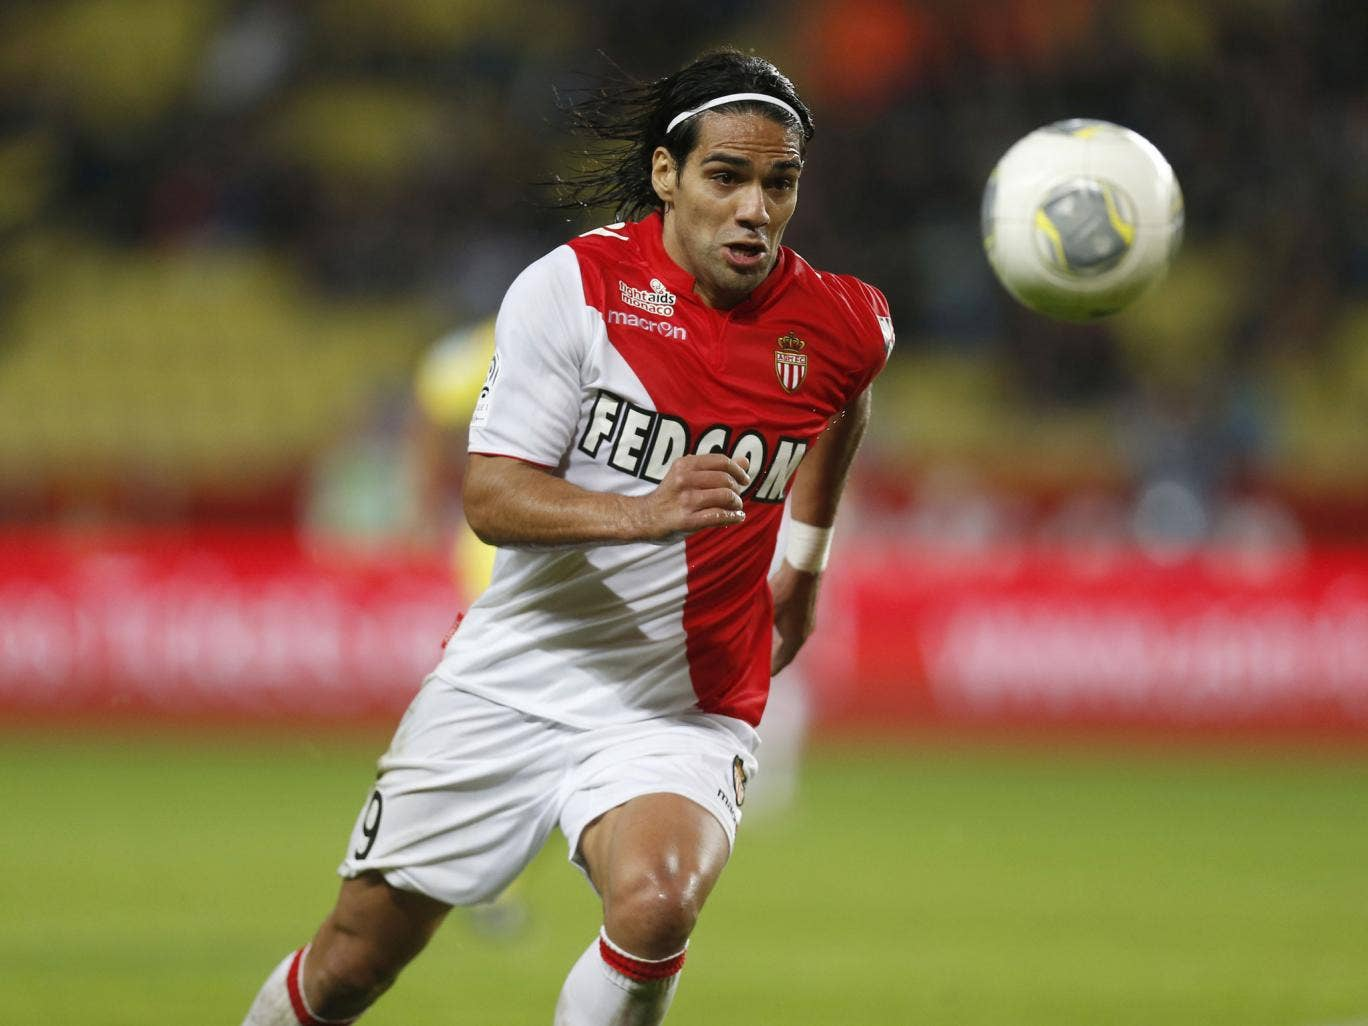 Radamel Falcao is reportedly the subject of interest from Liverpool and Manchester City